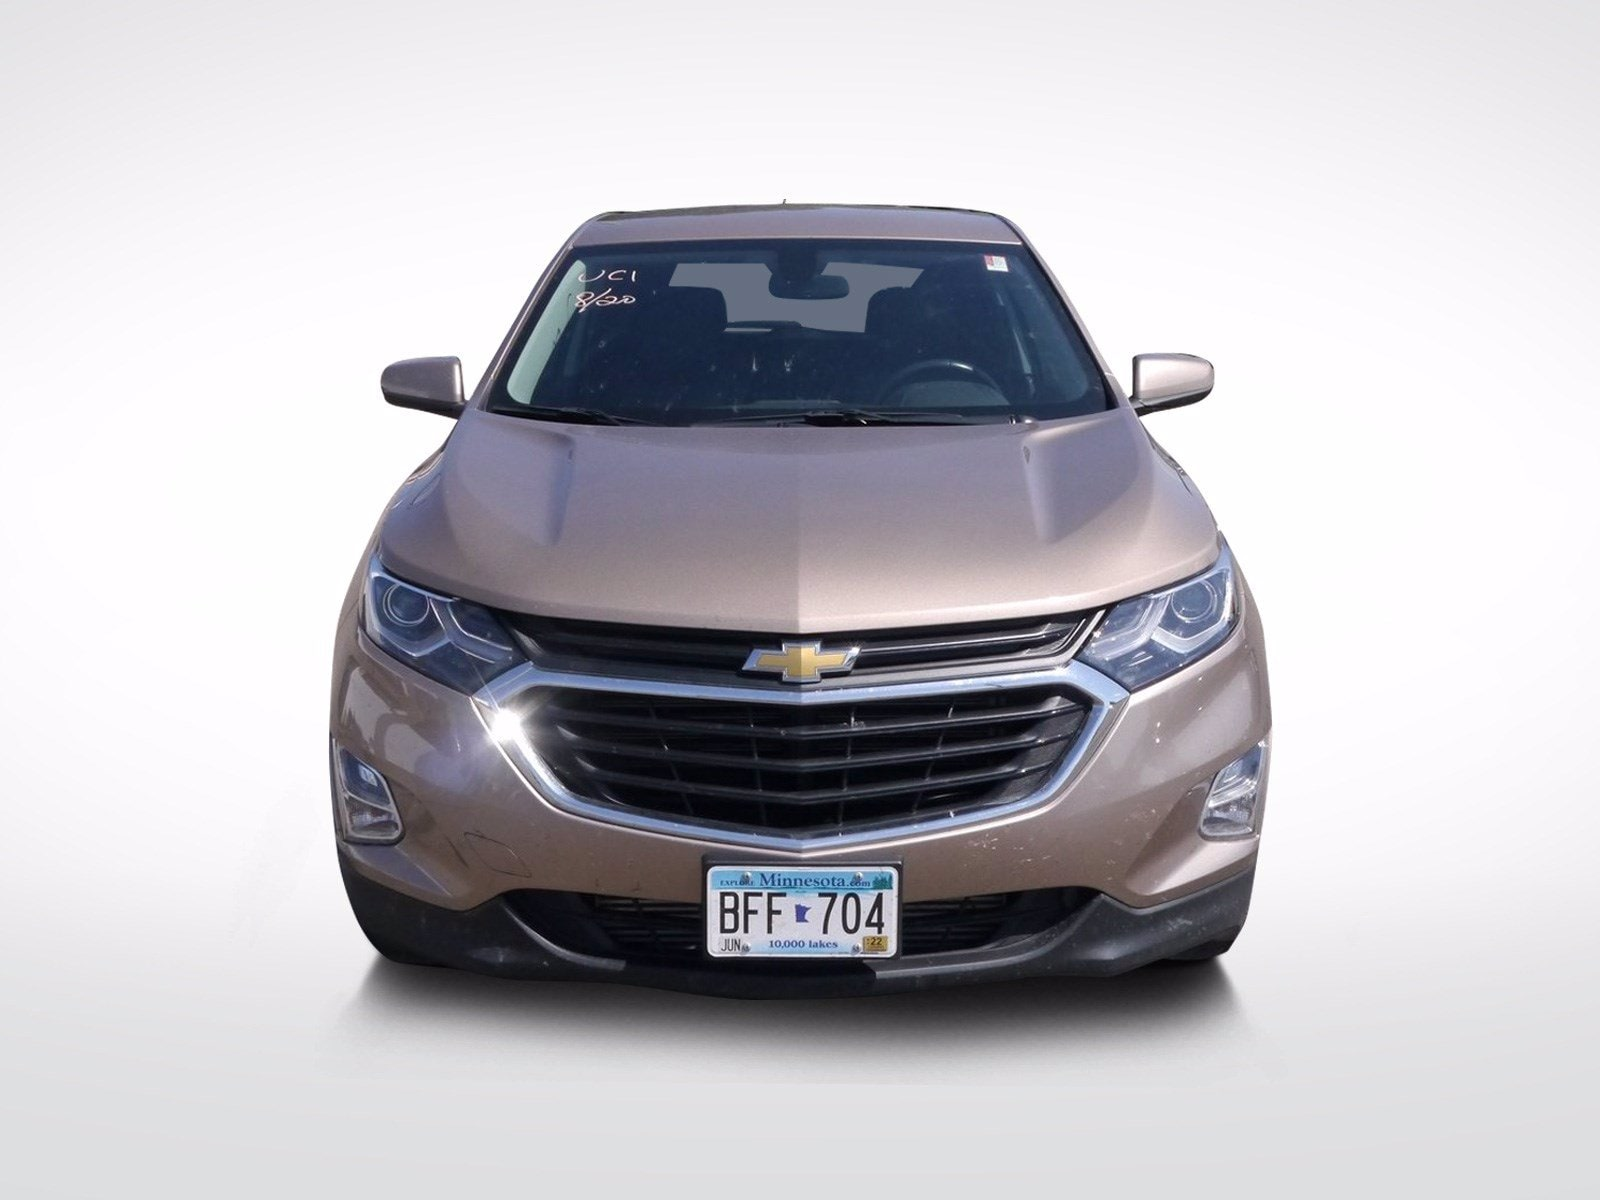 Used 2018 Chevrolet Equinox LT with VIN 3GNAXSEV6JL408126 for sale in Baxter, Minnesota